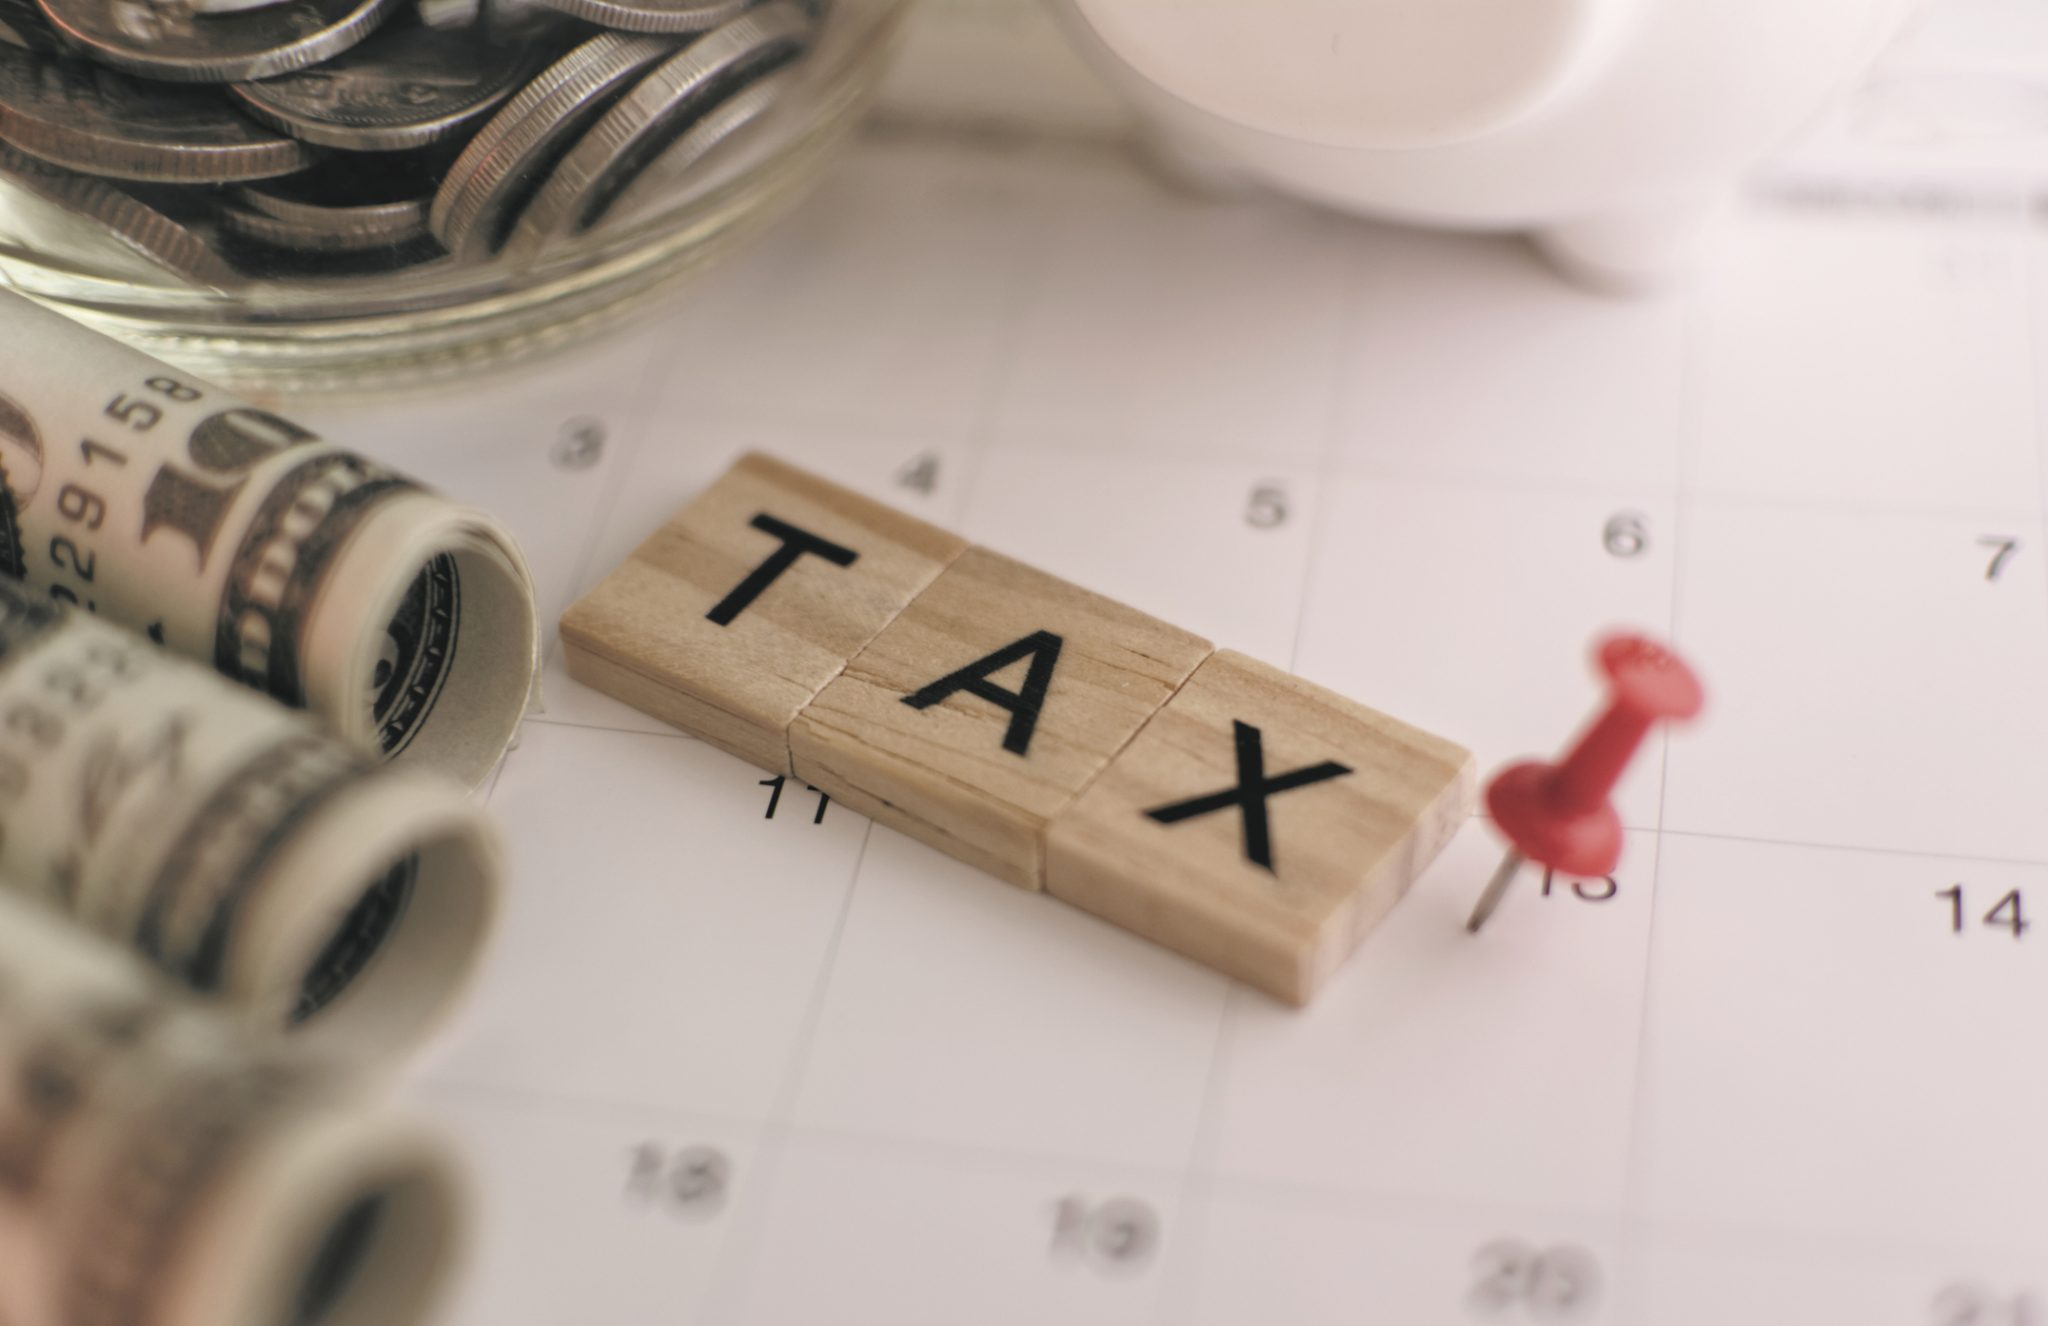 Scrabble tiles spell the word tax next to rolls of money and a red pushpin marking tax day on a calendar